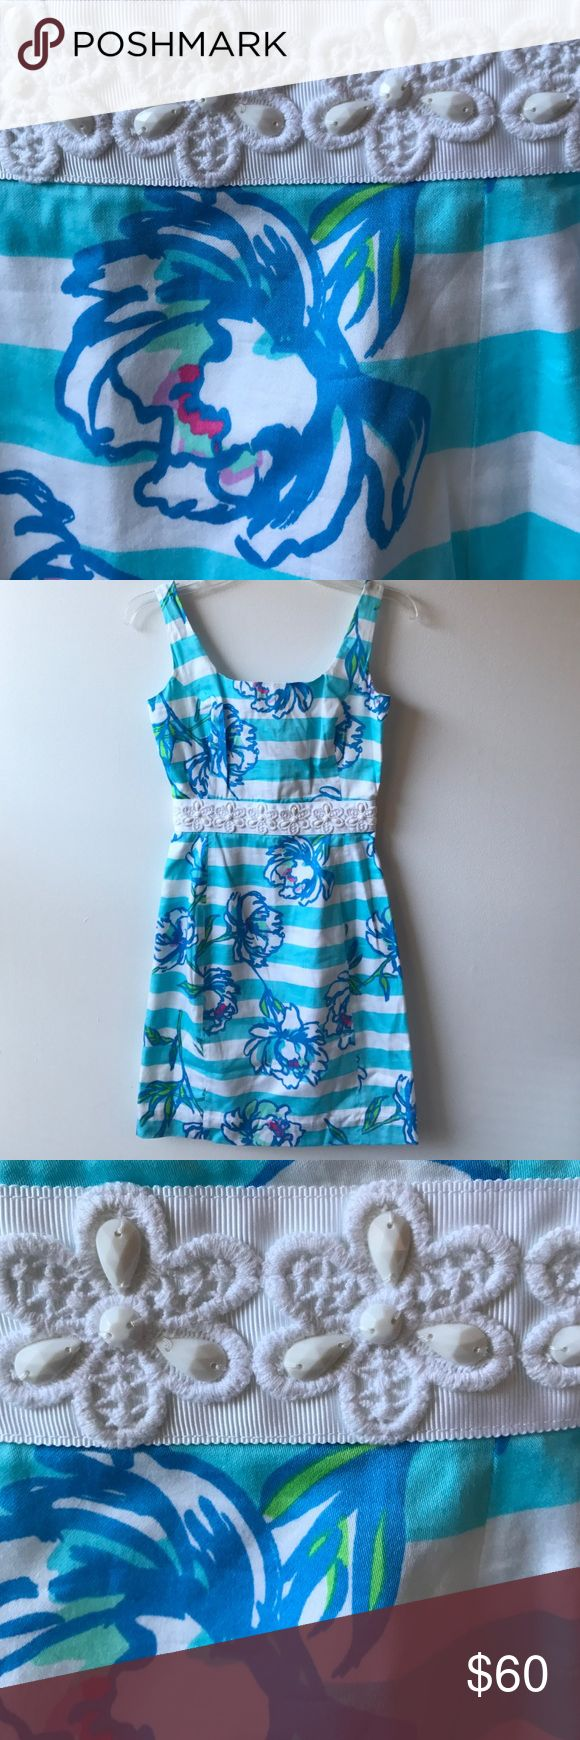 Lilly Pulitzer Serena Dress Tossing the Line Great condition, Lilly Pulitzer Serena Dress Shorely Blue Tossing the Line, sleeveless, sequin beaded waist band, front and back scoop neckline, fitted silhouette, back zip closure, fully lined 100% cotton, size 00 Lilly Pulitzer Dresses